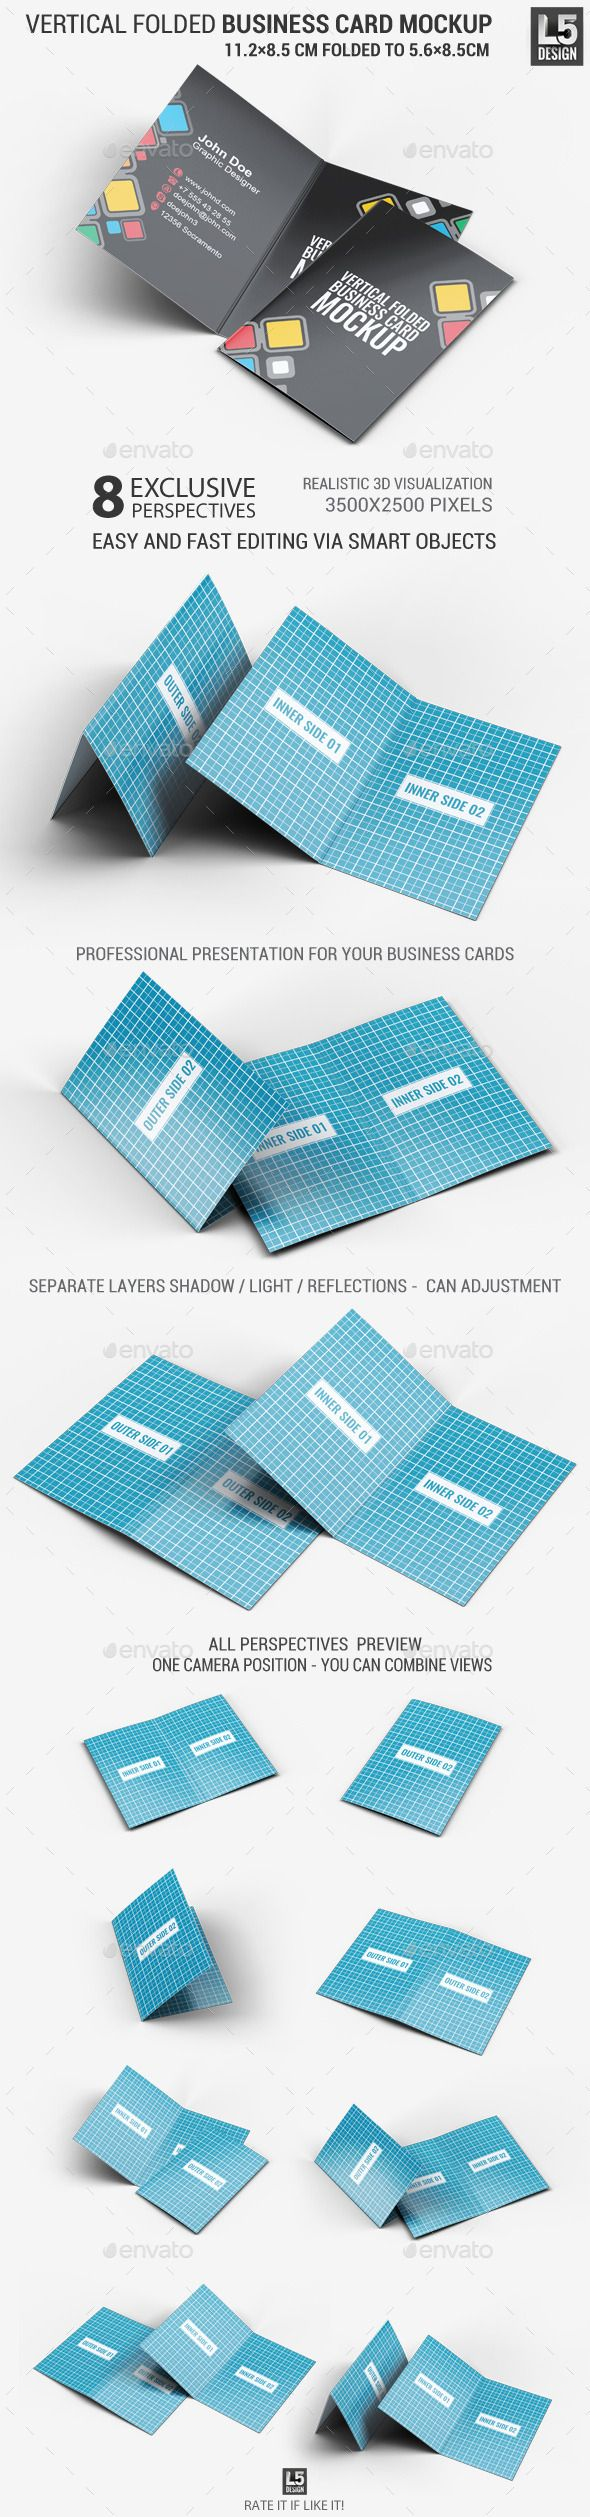 Vertical Folded Business Card Mock-Up | Business cards, Mockup and ...